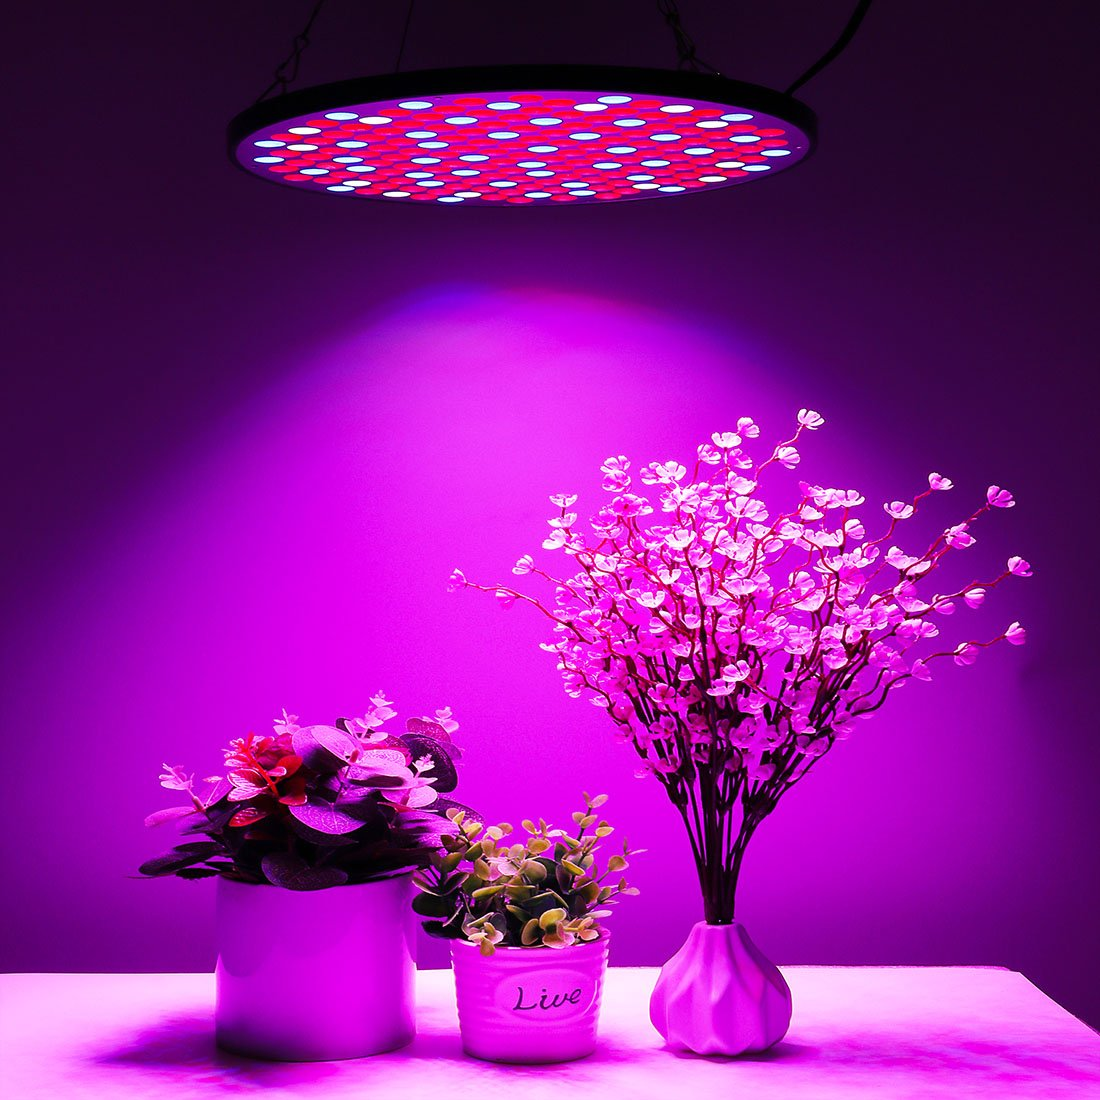 50W Grow Light Full Spectrum Indoor LED Growing Lamps AC85-265V Plant Growth Lighting for Plants Flowers Seedlings Cultivation